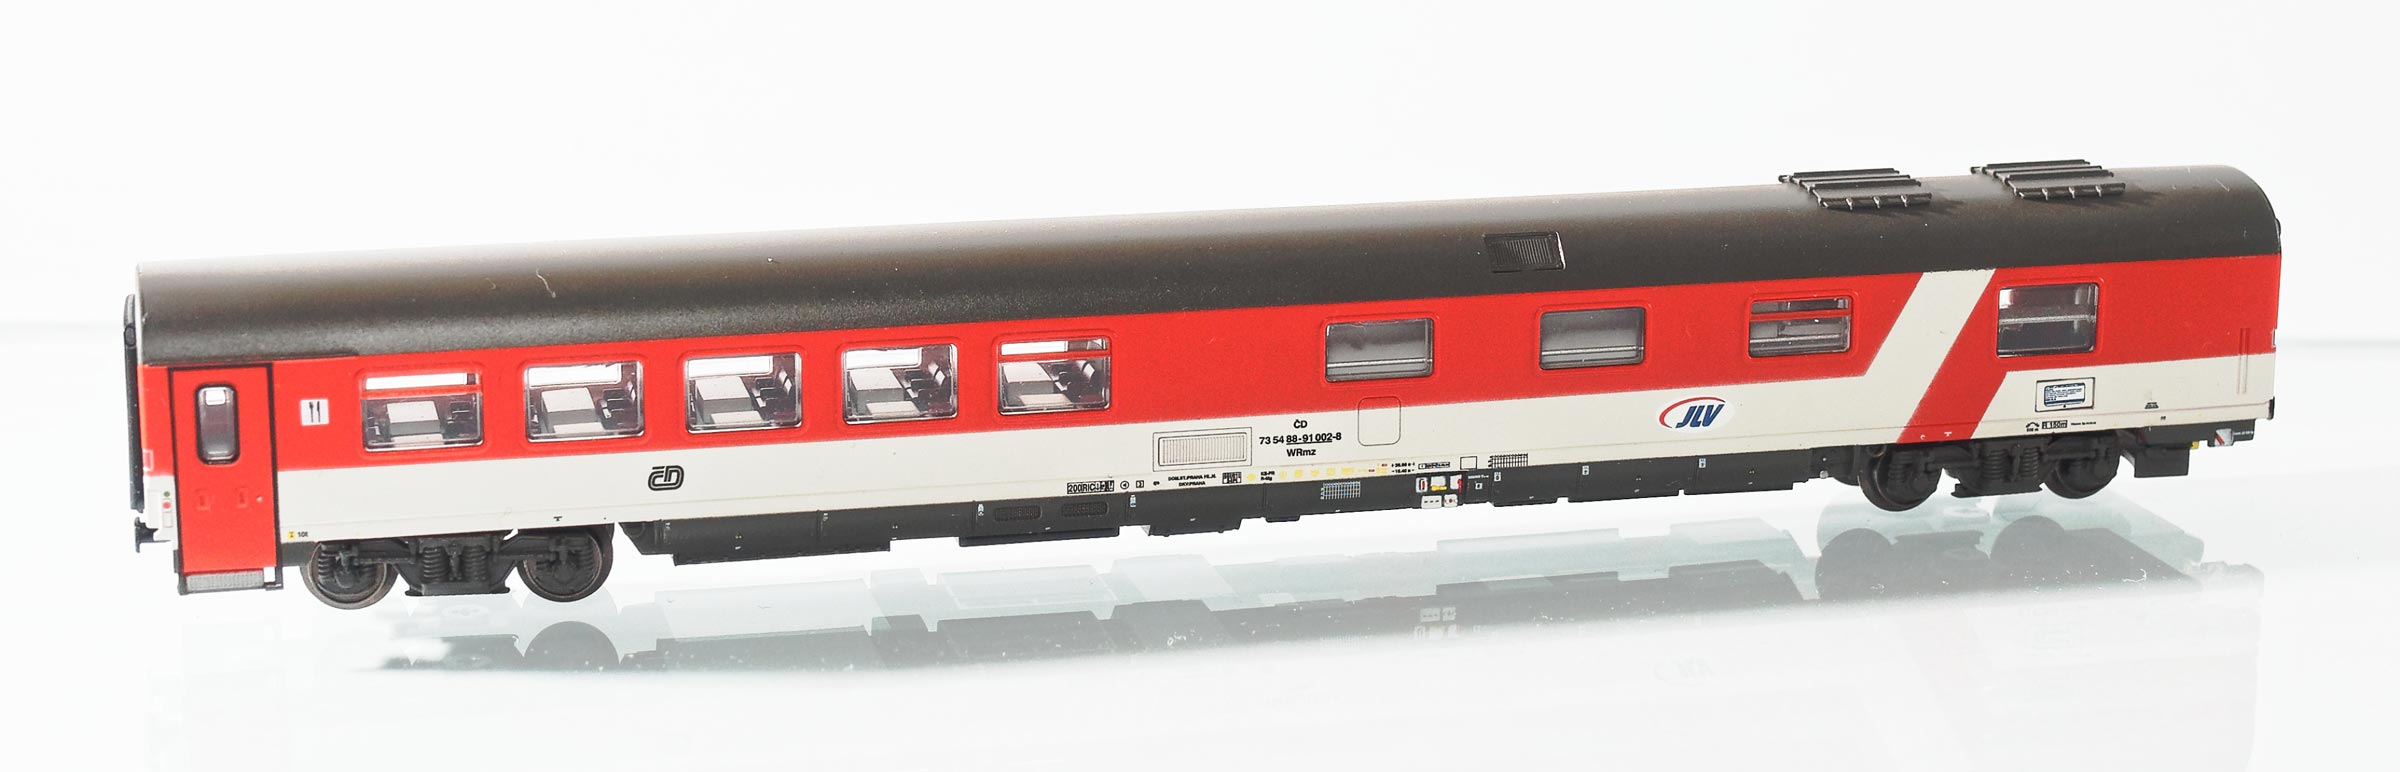 195473: EuroCity dining car, type WRmz 815 of the Czech Railways CD